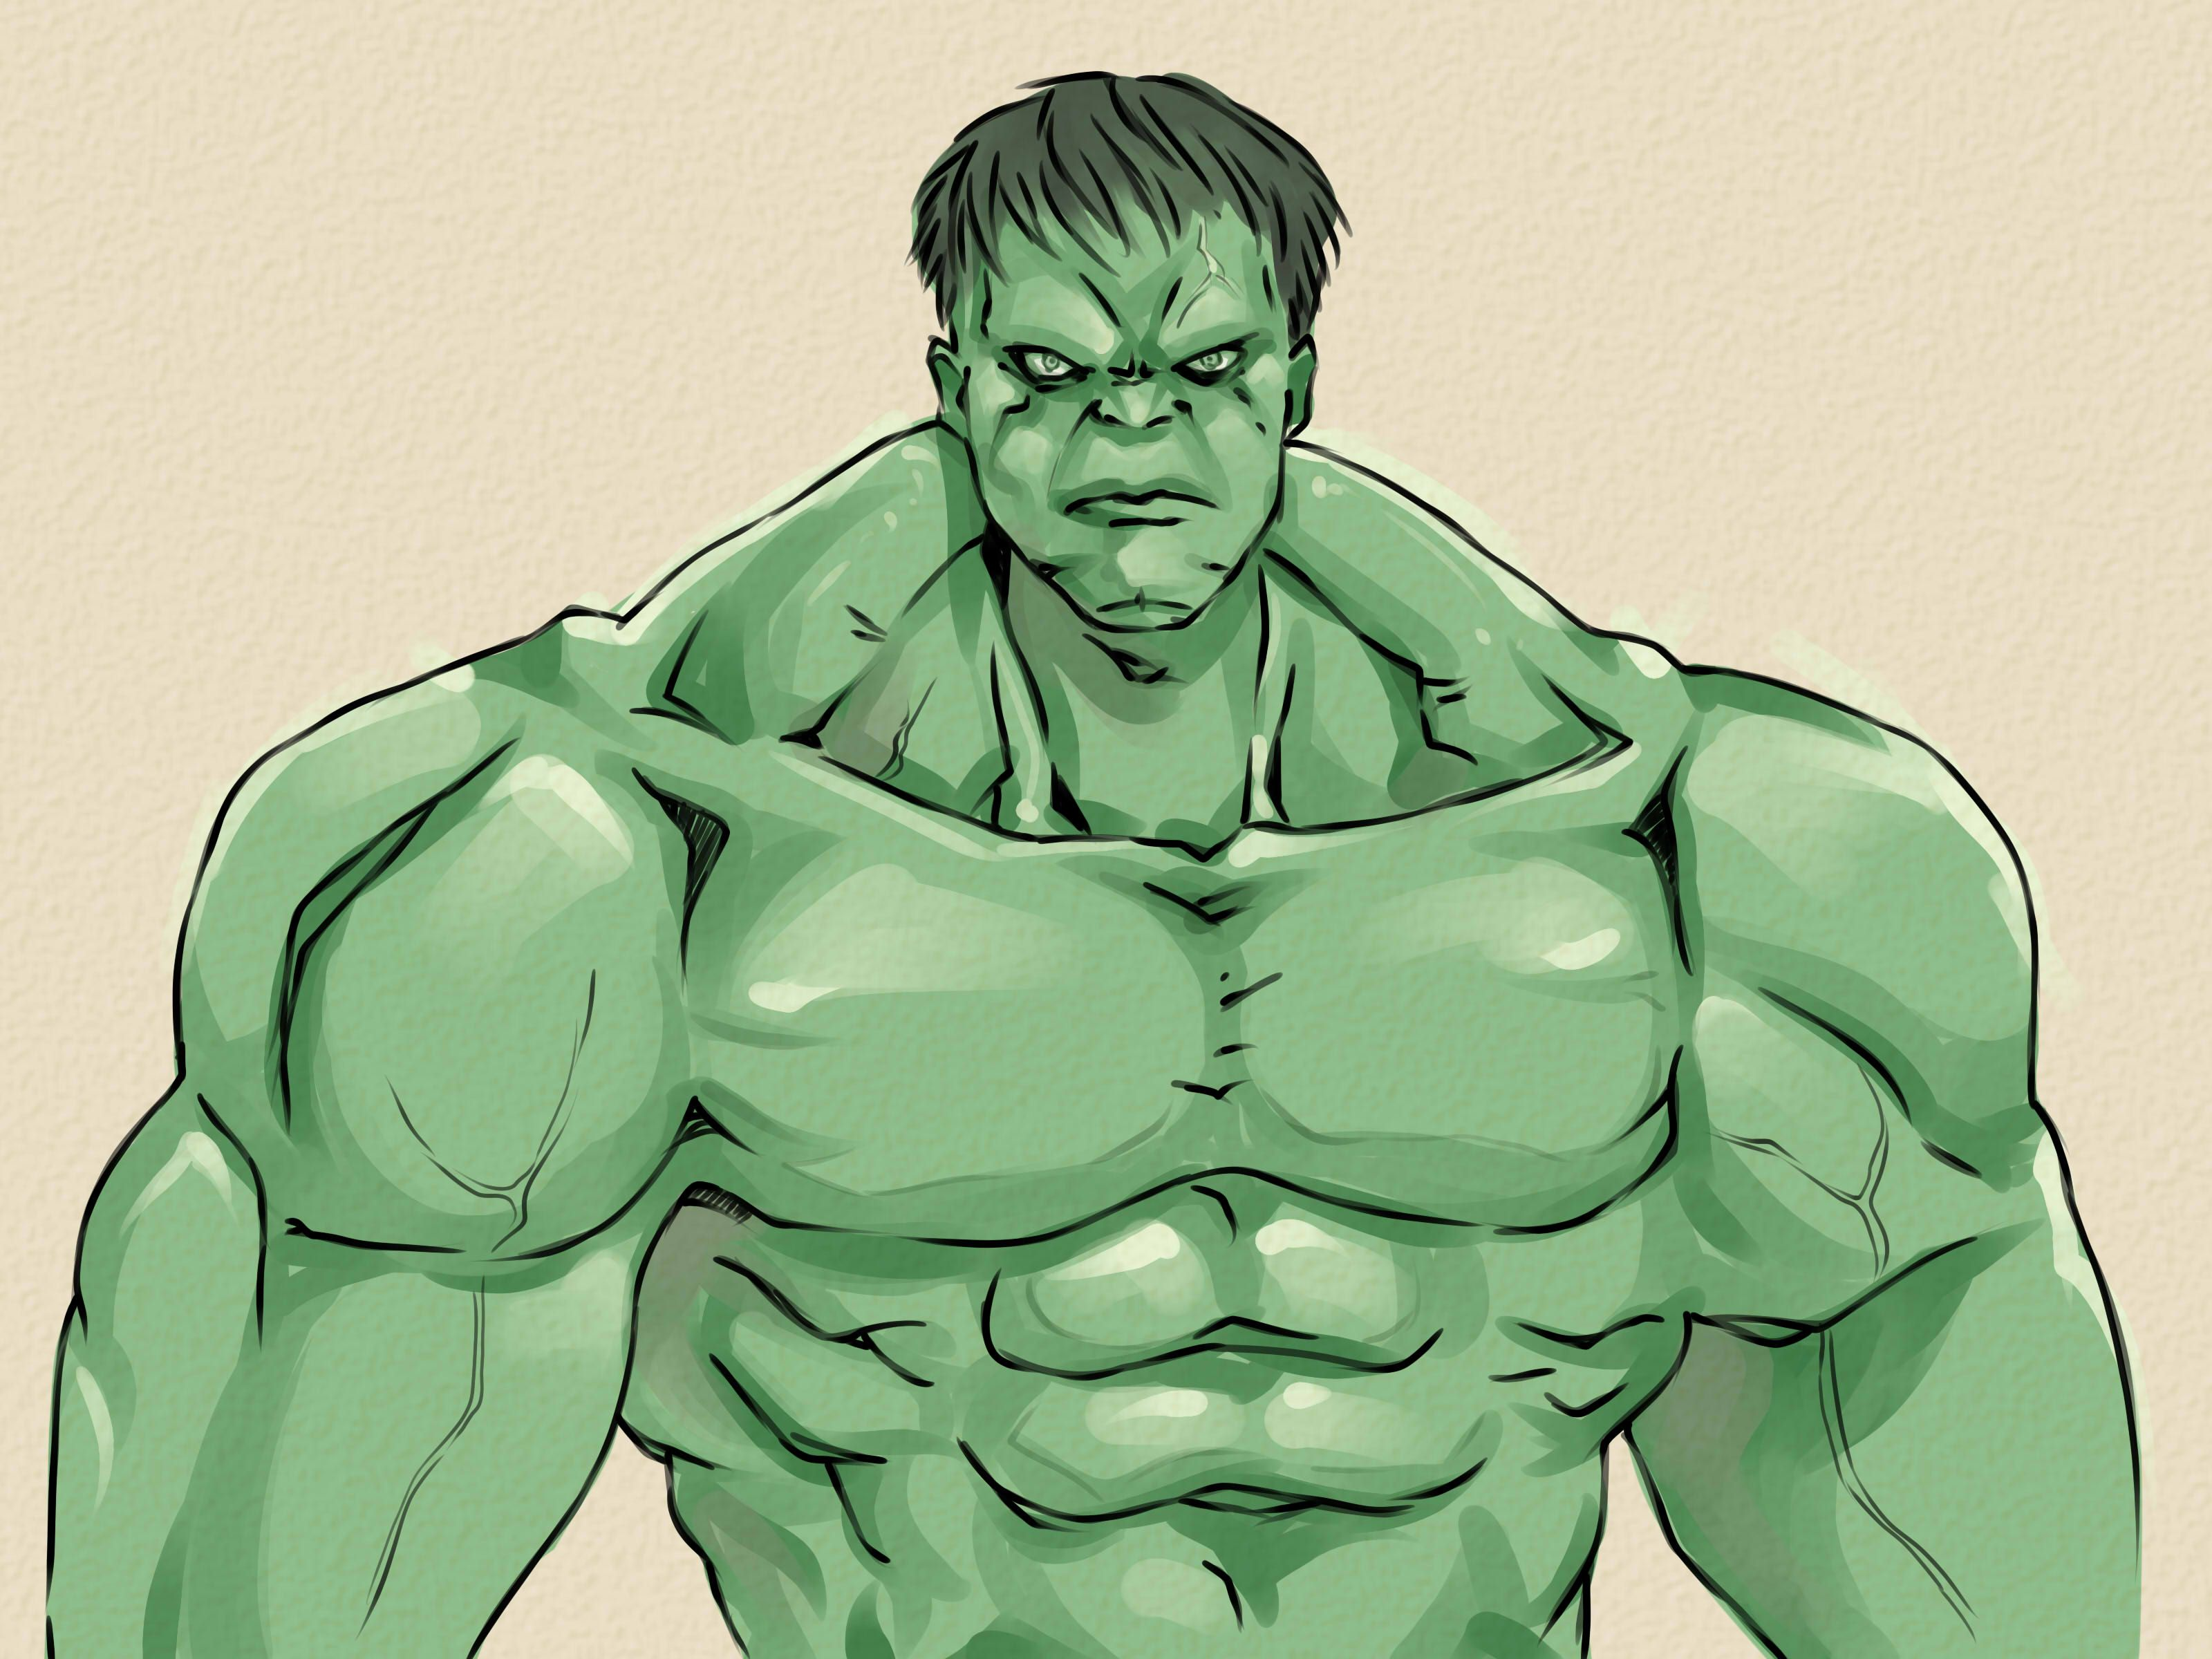 3200x2400 How To Draw The Incredible Hulk